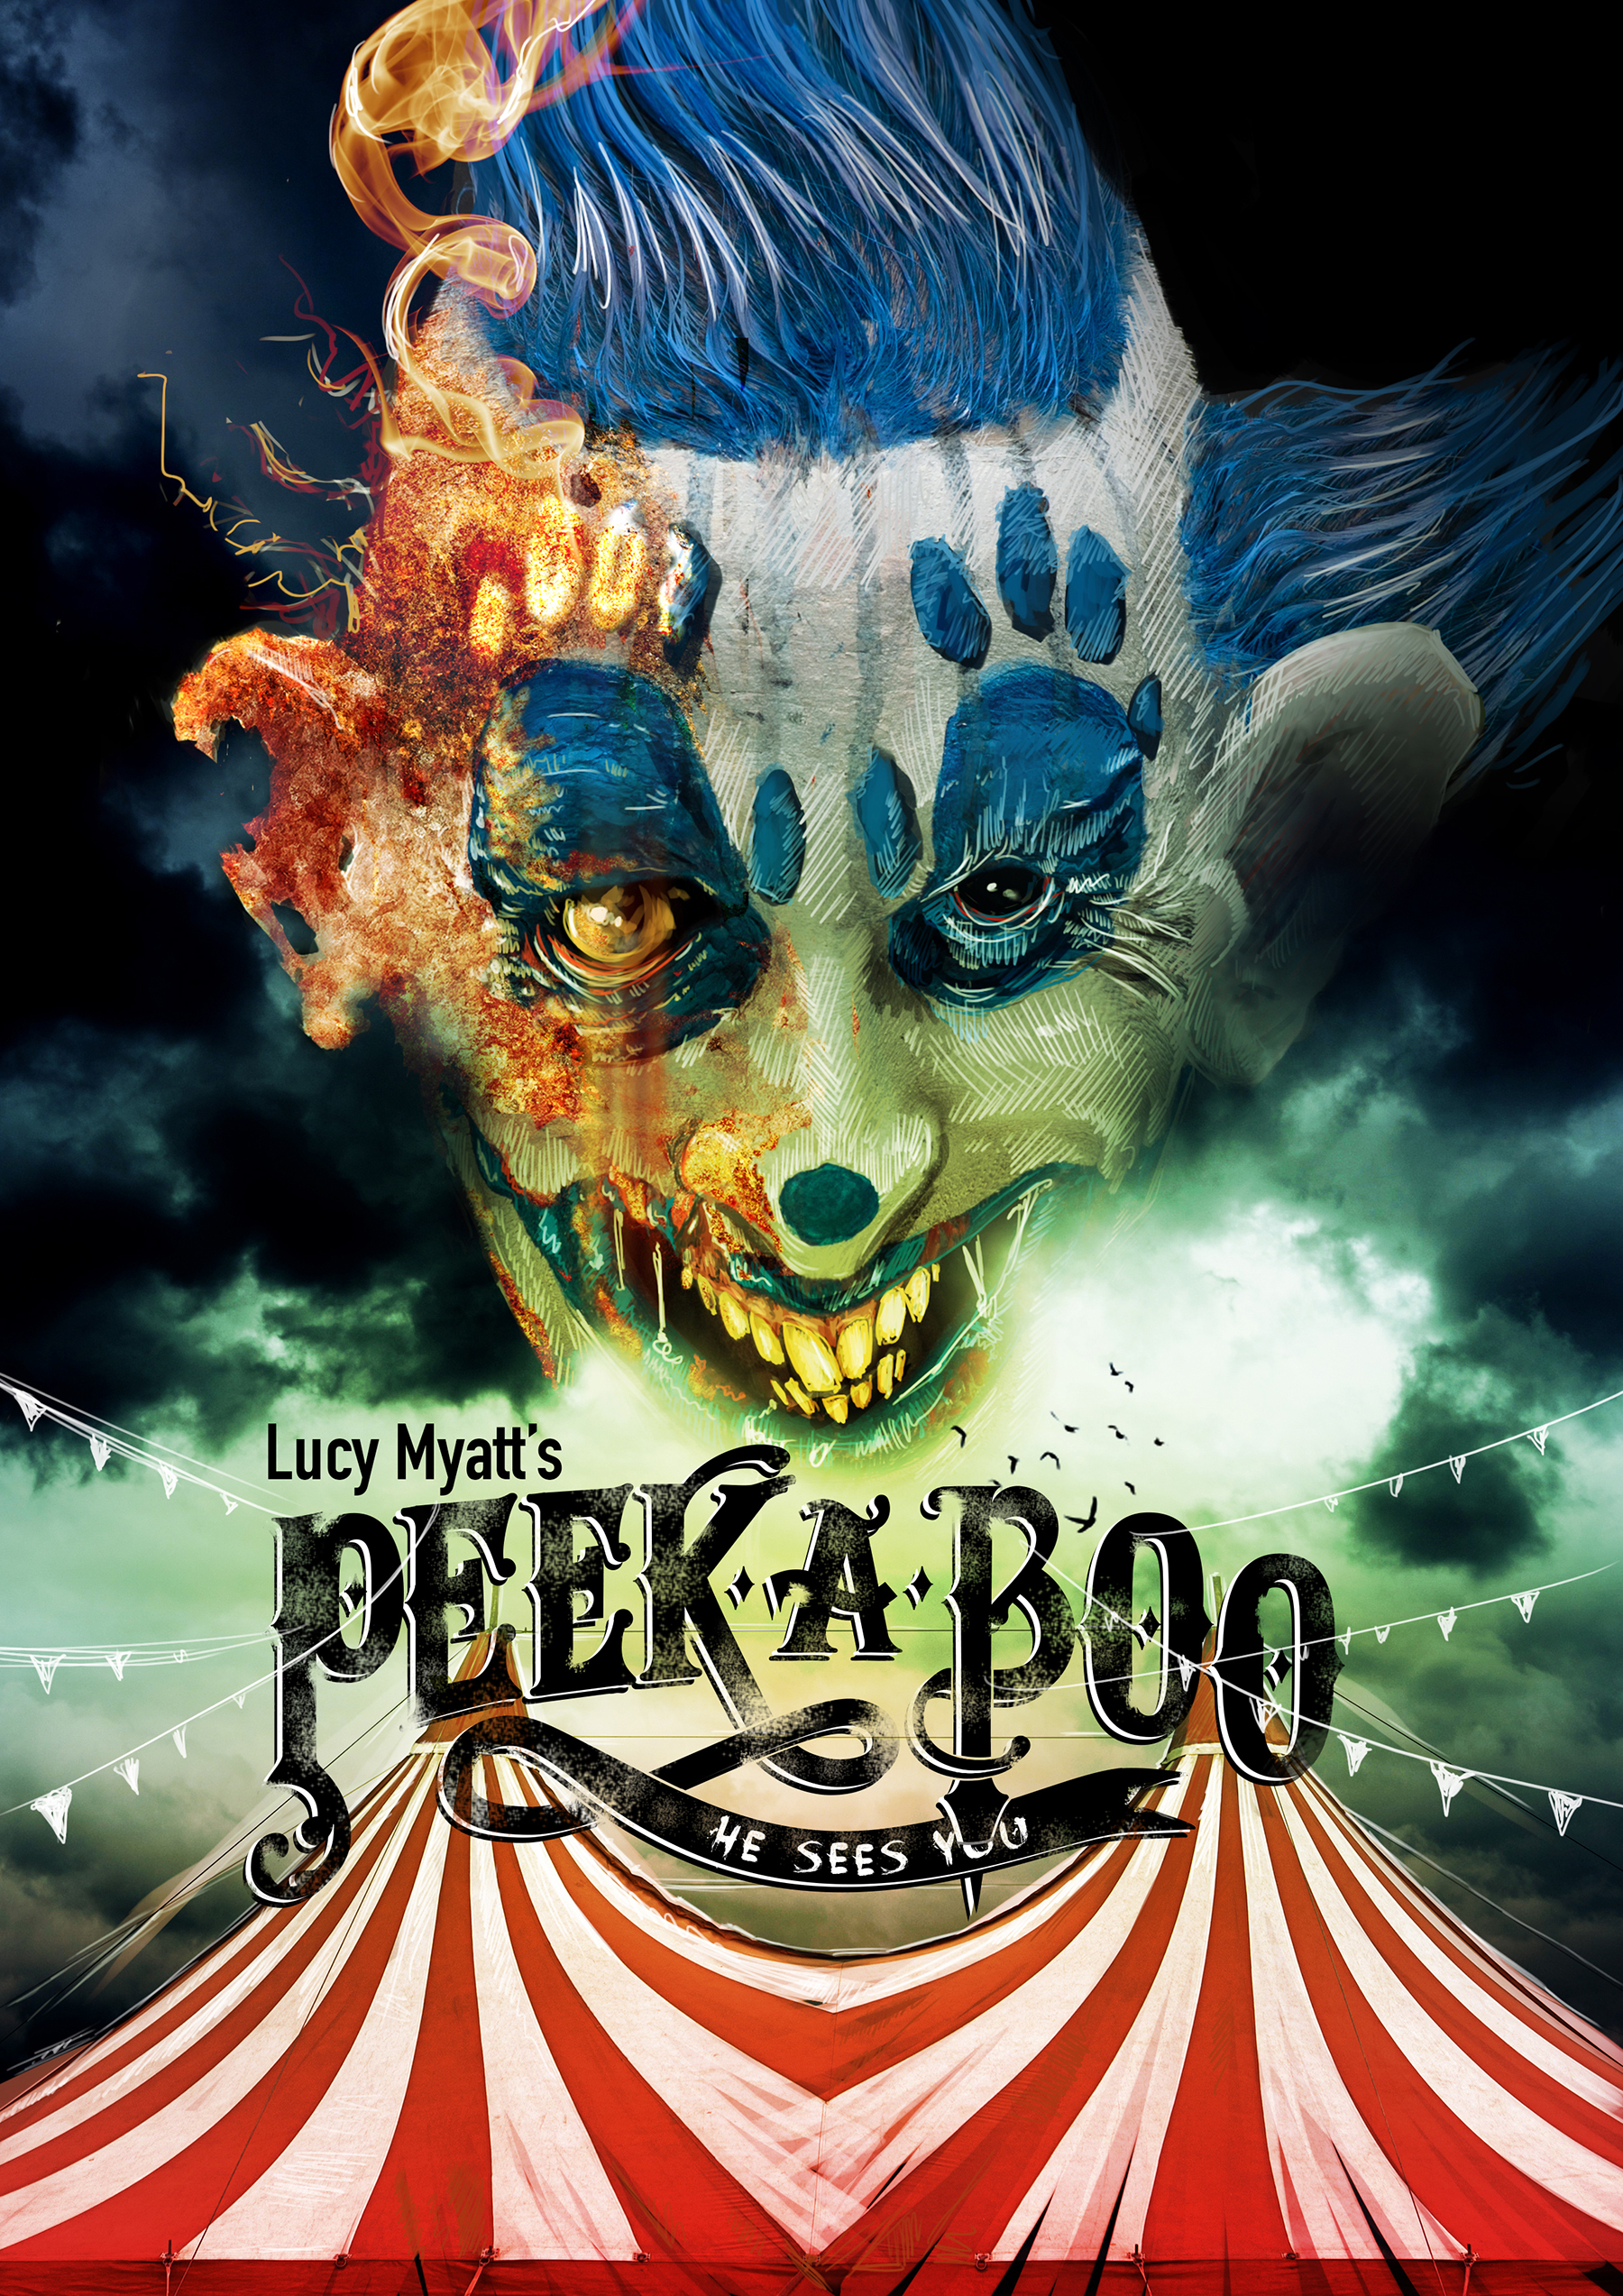 Peek A Boo horror clown cover